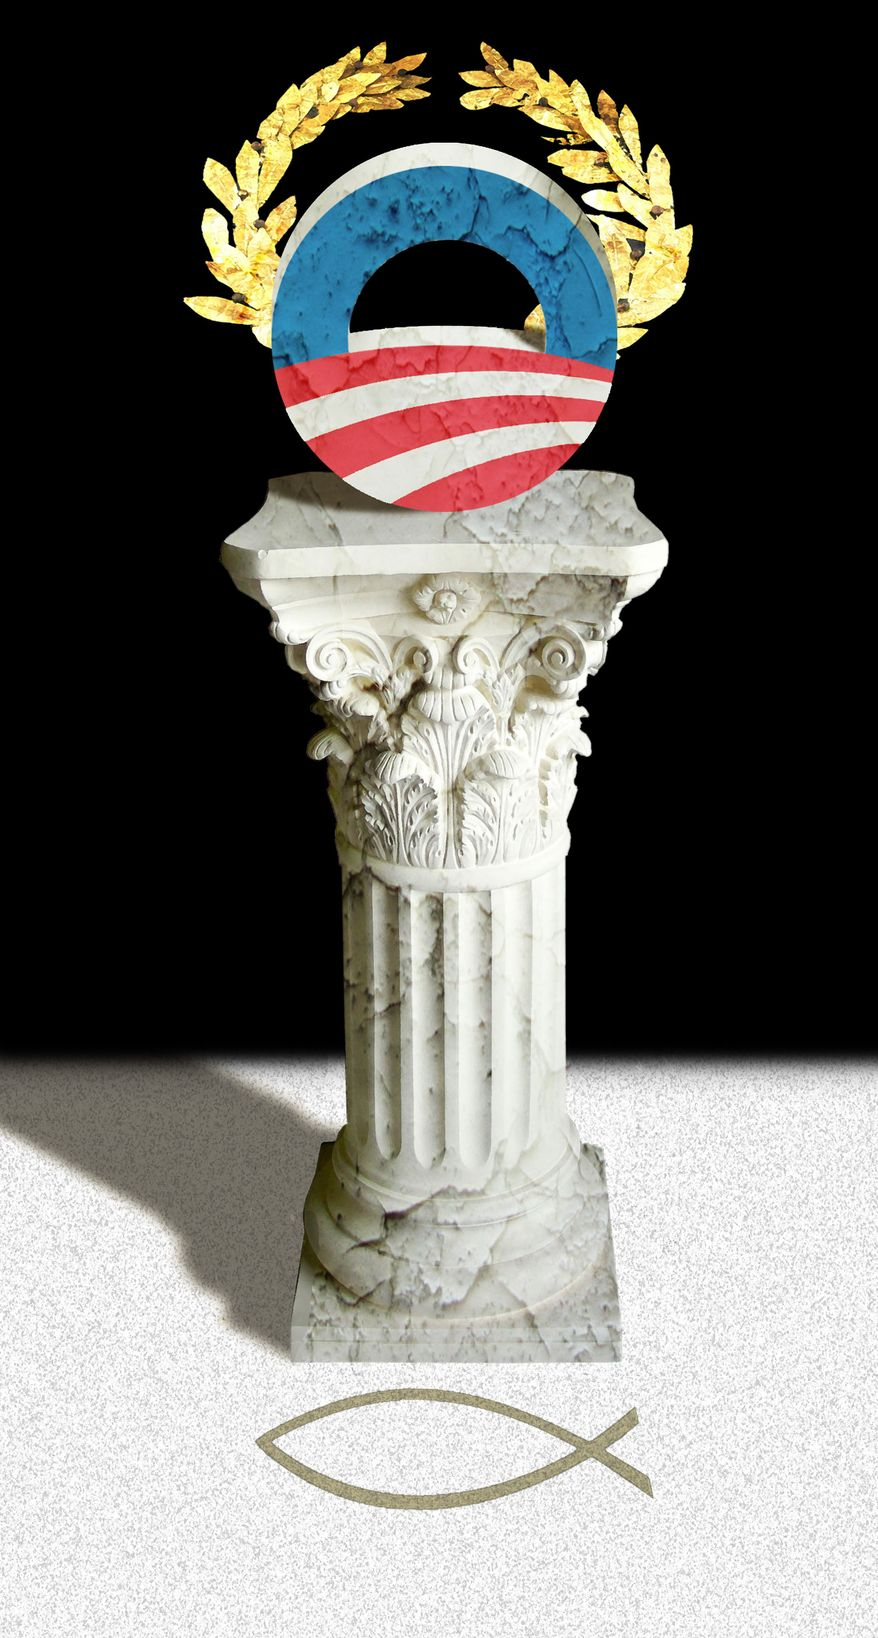 Illustration Obama's anti-Christianity by Alexander Hunter for The Washington Times